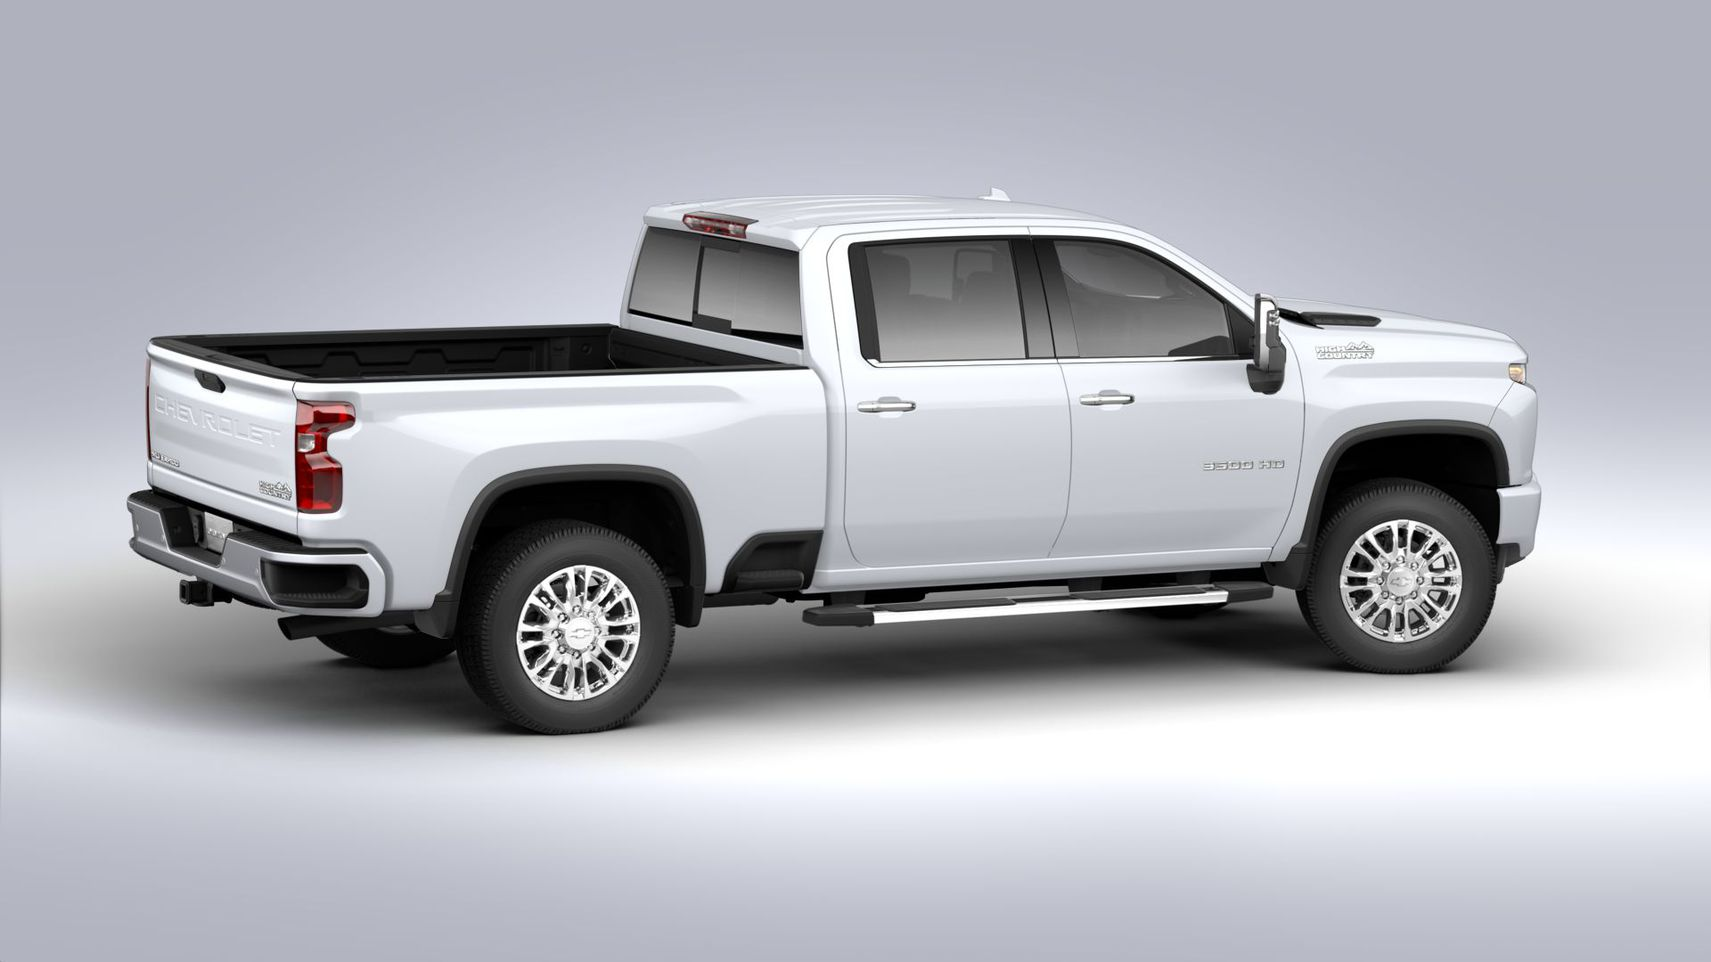 Chevrolet Silverado 3500 HD 2020 High Country 6.6 V8 Duramax® Turbo Diesel Дизель 10 ст АКПП Полный